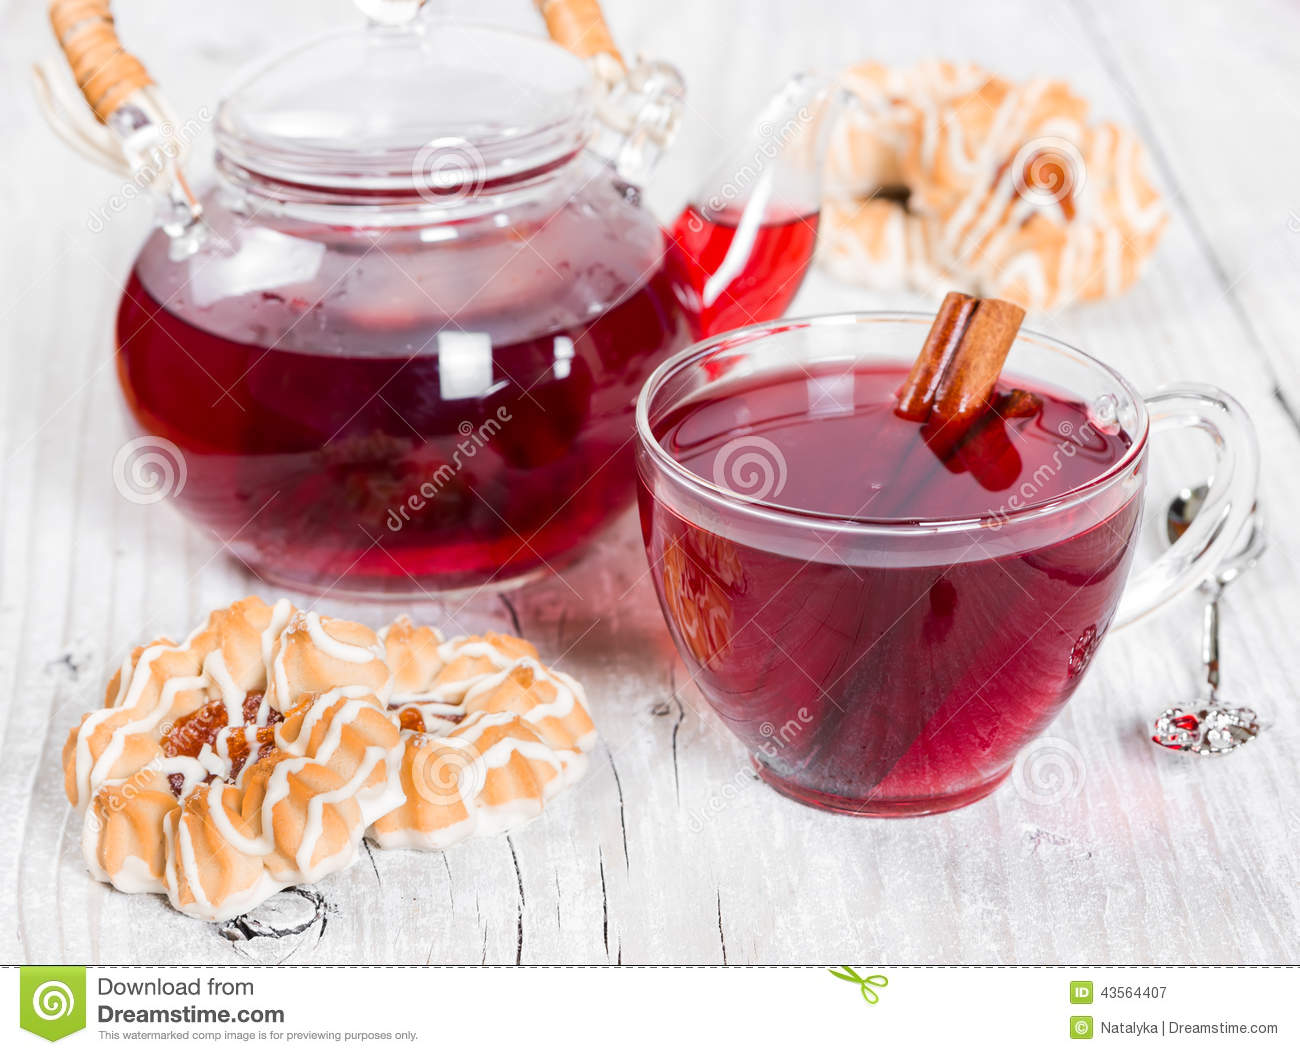 Flavored fruit tea with cookies on wooden background.